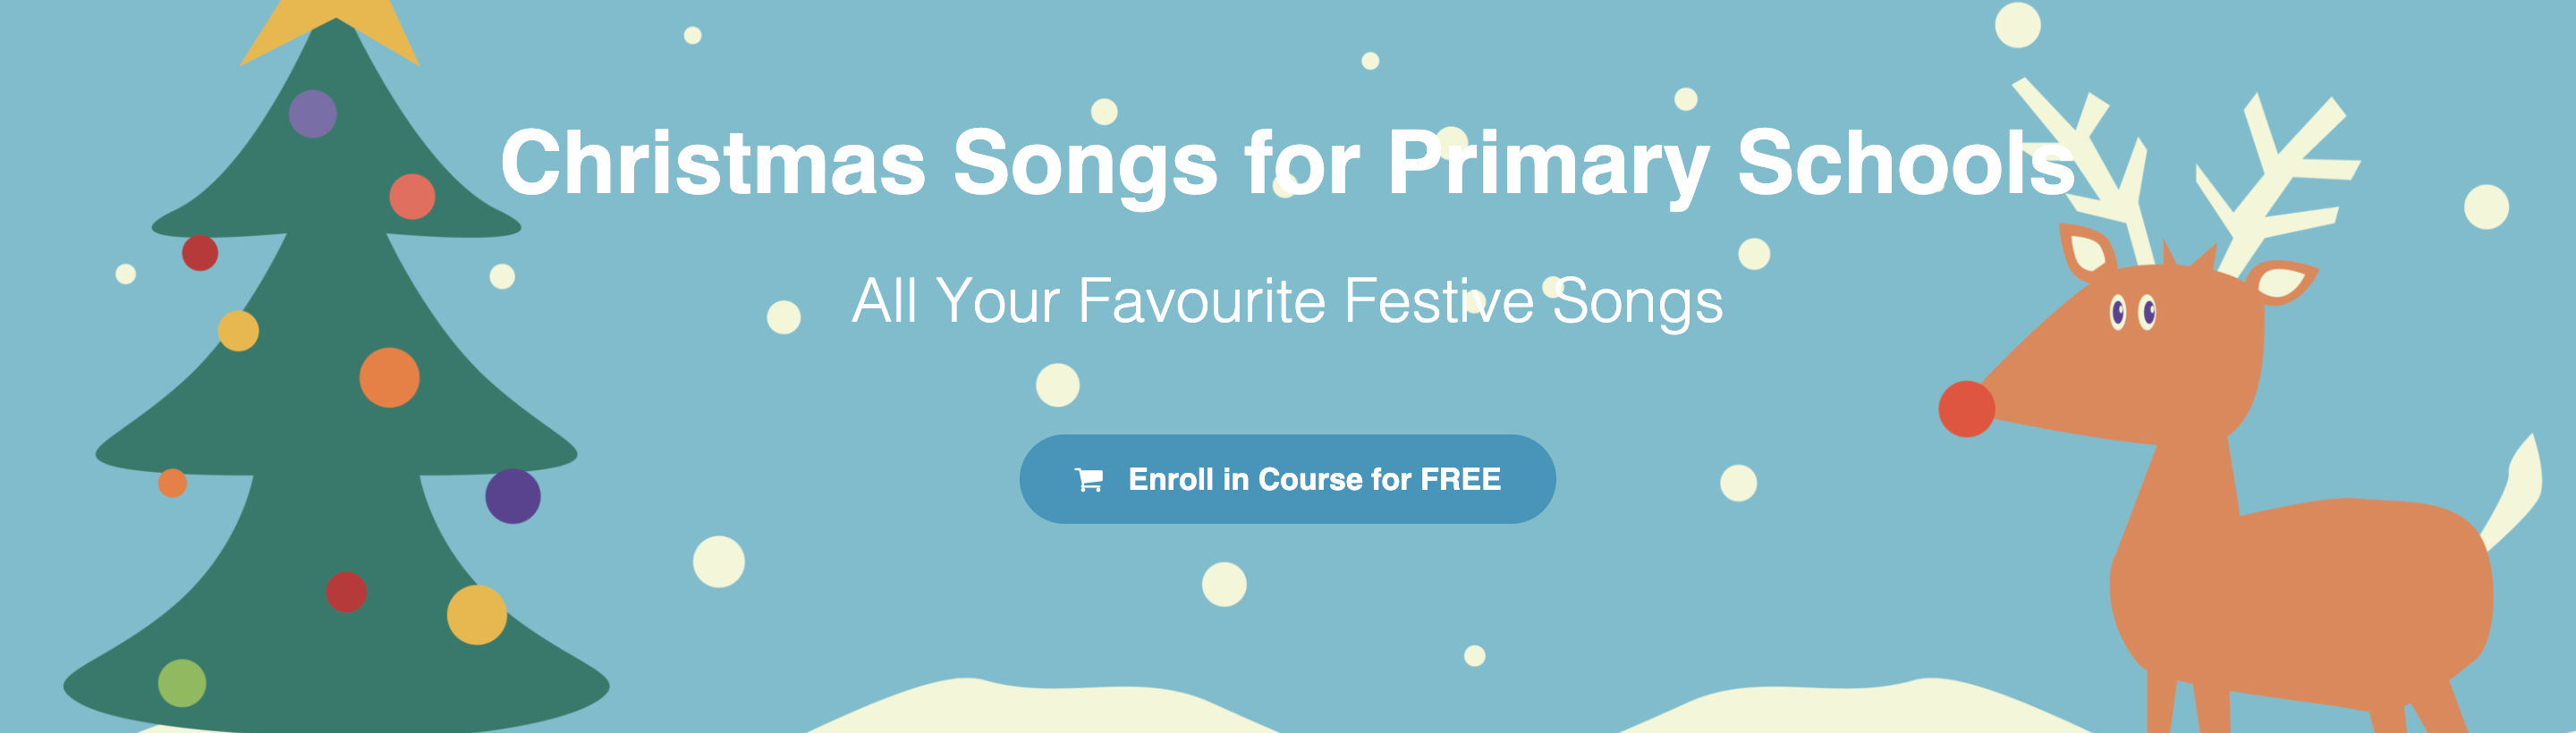 DabbledooMusic Christmas Songs for Primary Schools